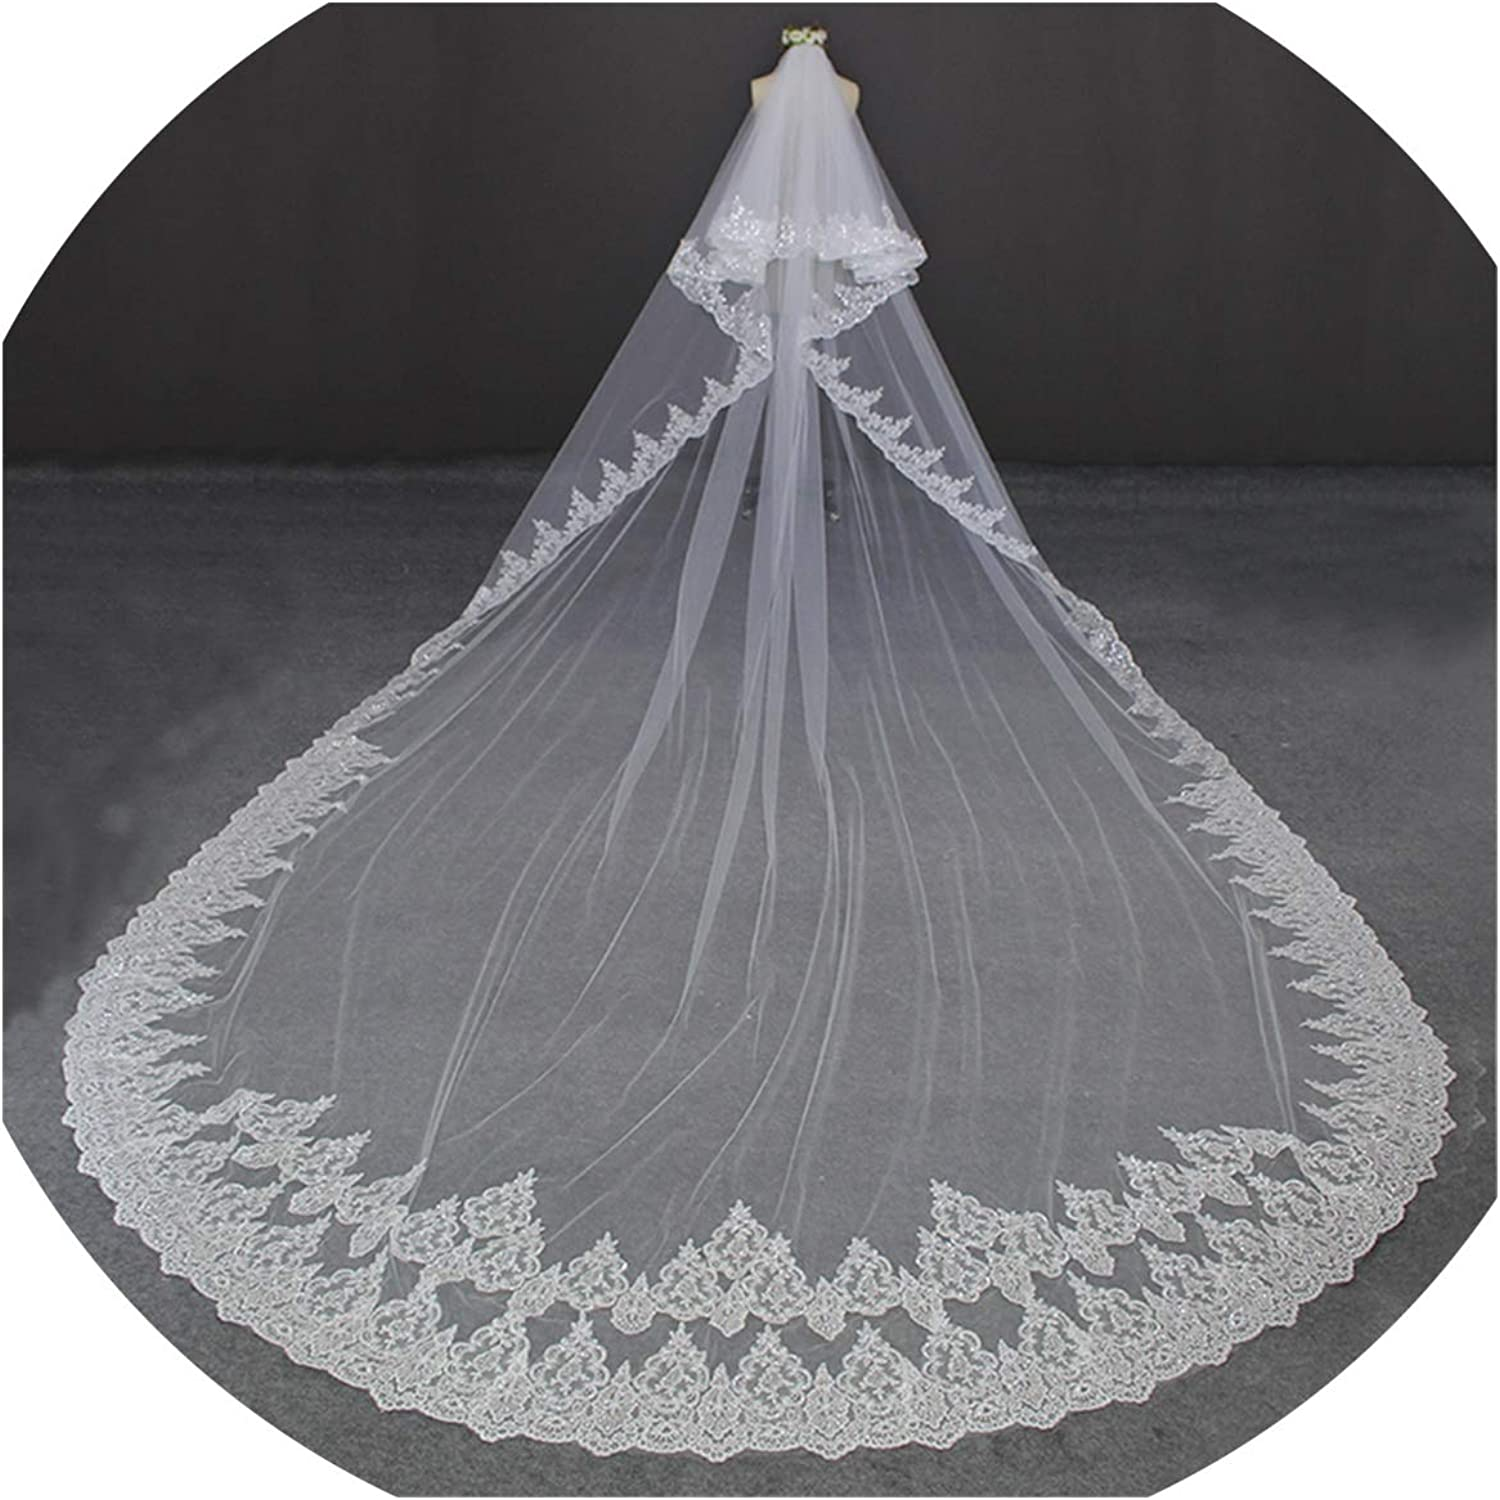 5M Full Edge with Lace Two Layers Long Wedding Veil with Comb White Ivory Bridal Veil 2019,Ivory